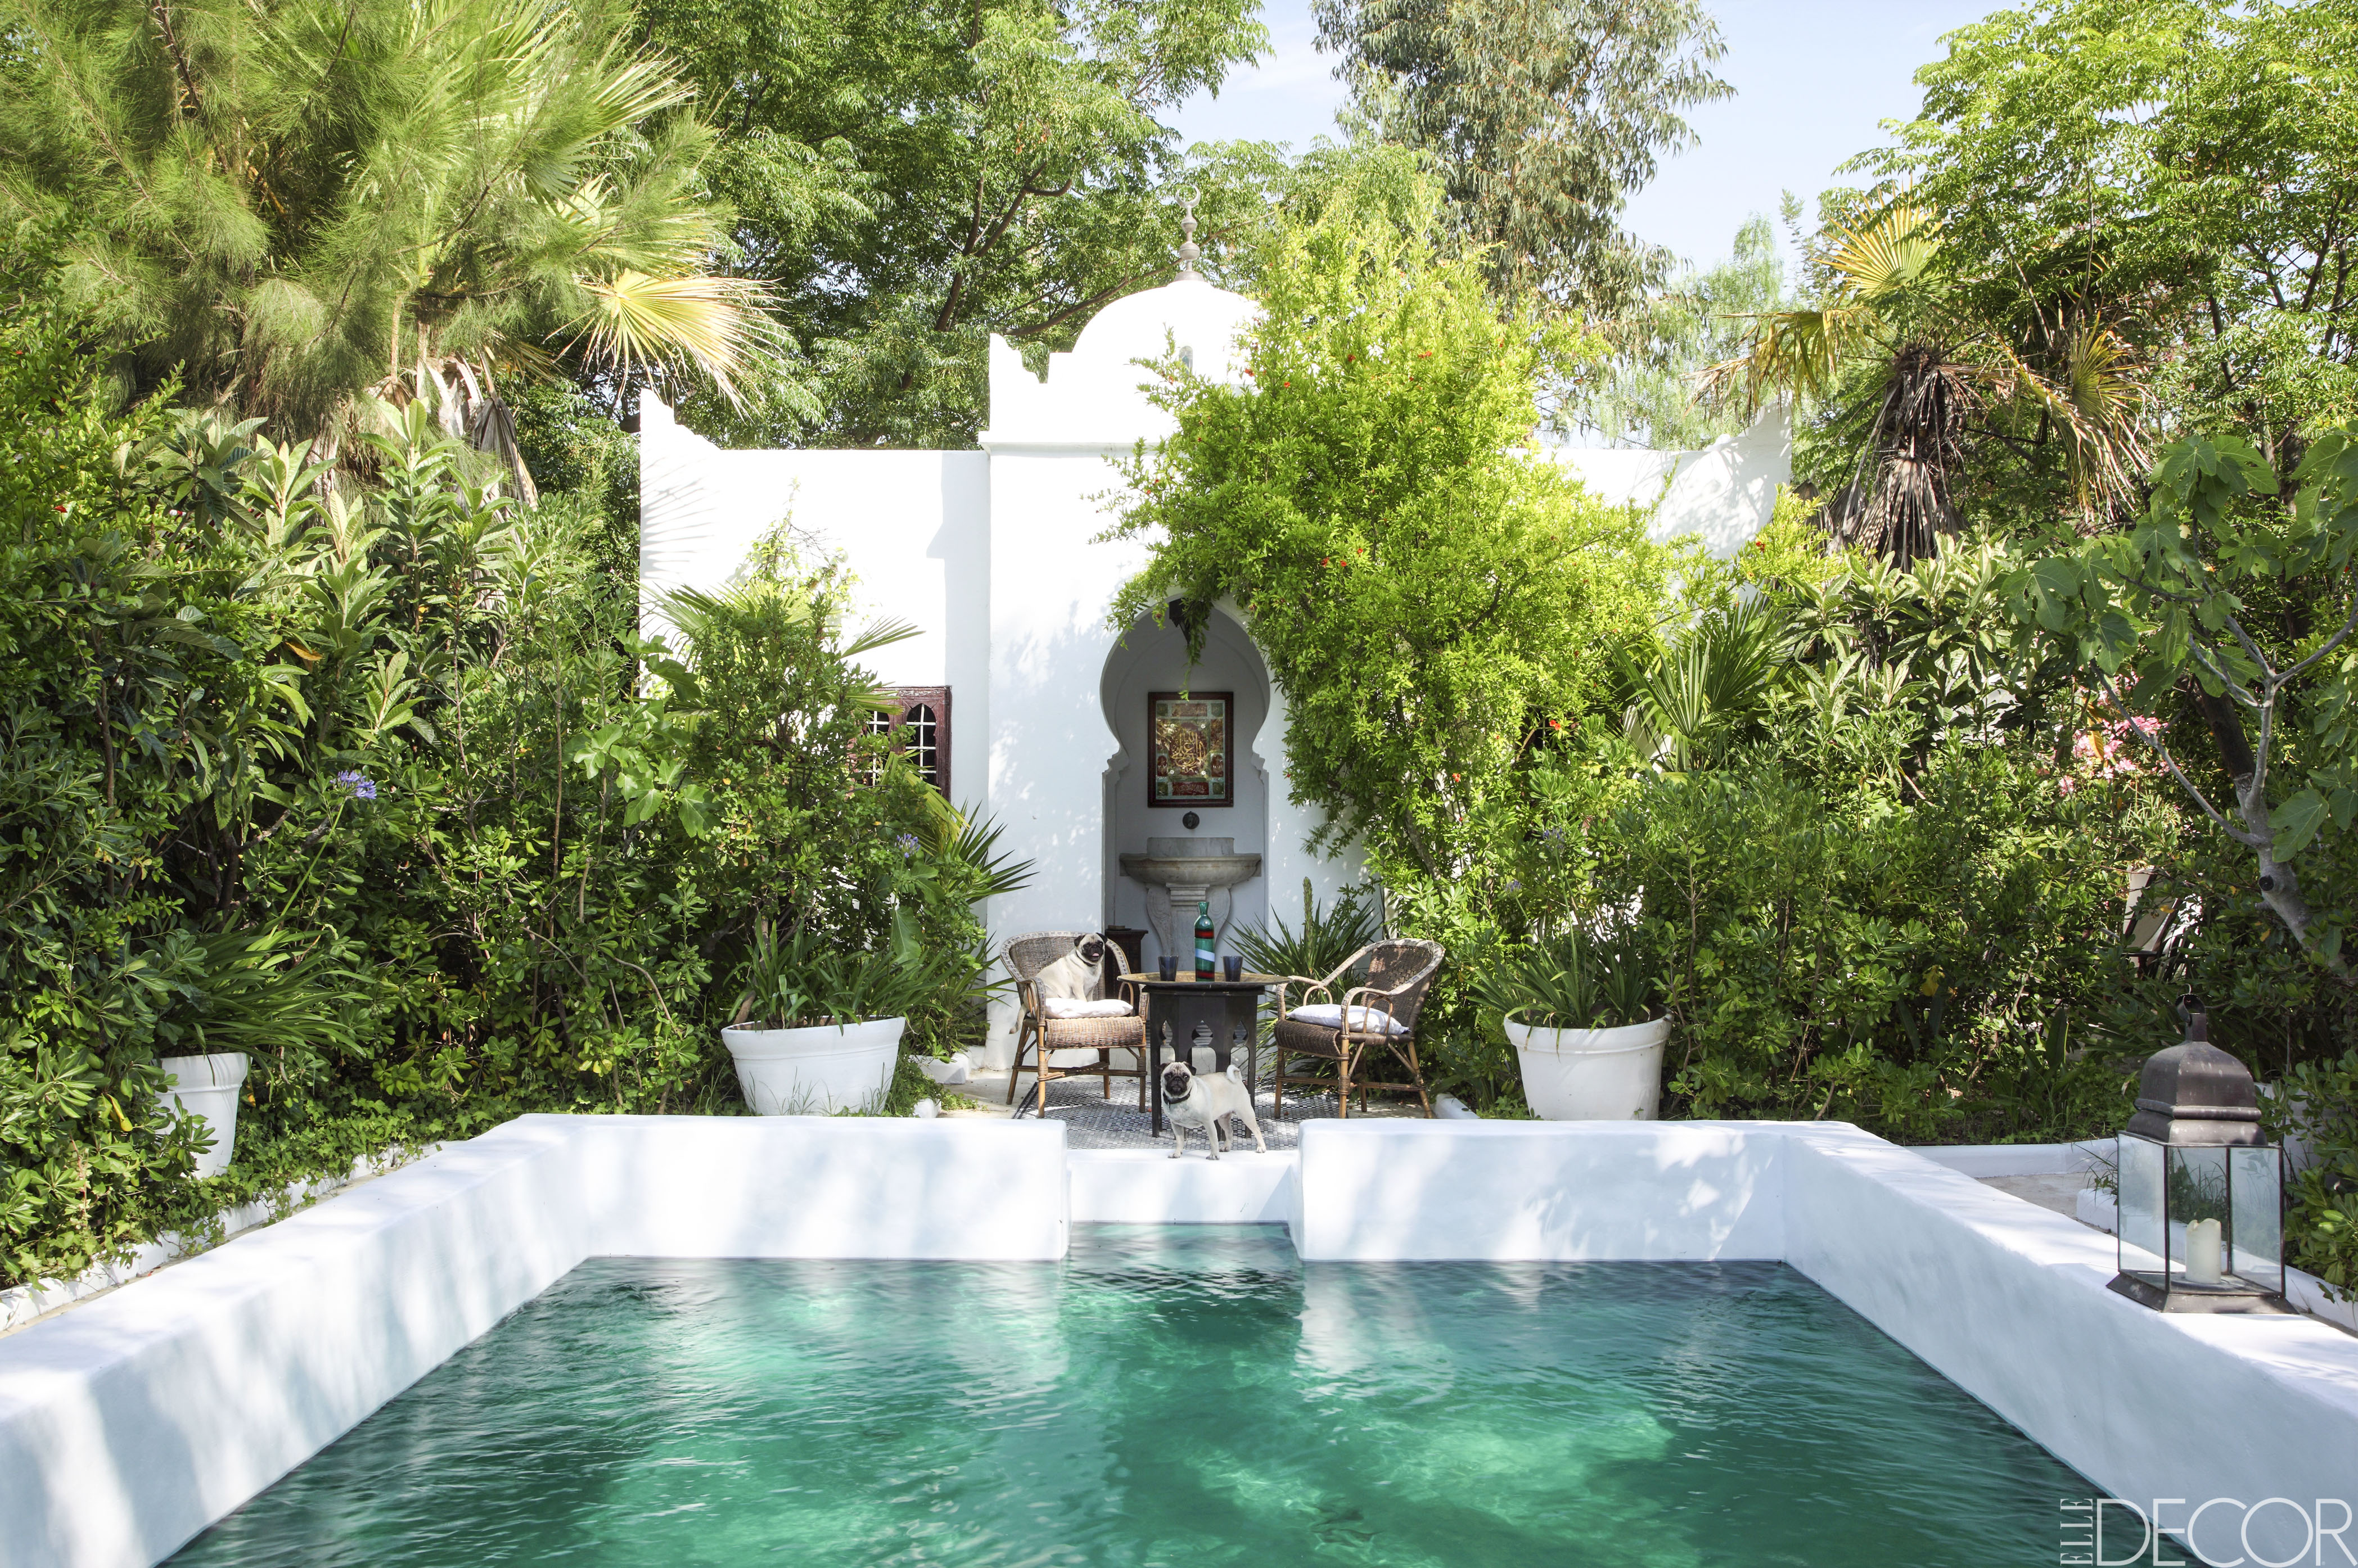 8 Pool Designs For Backyard Landscaping